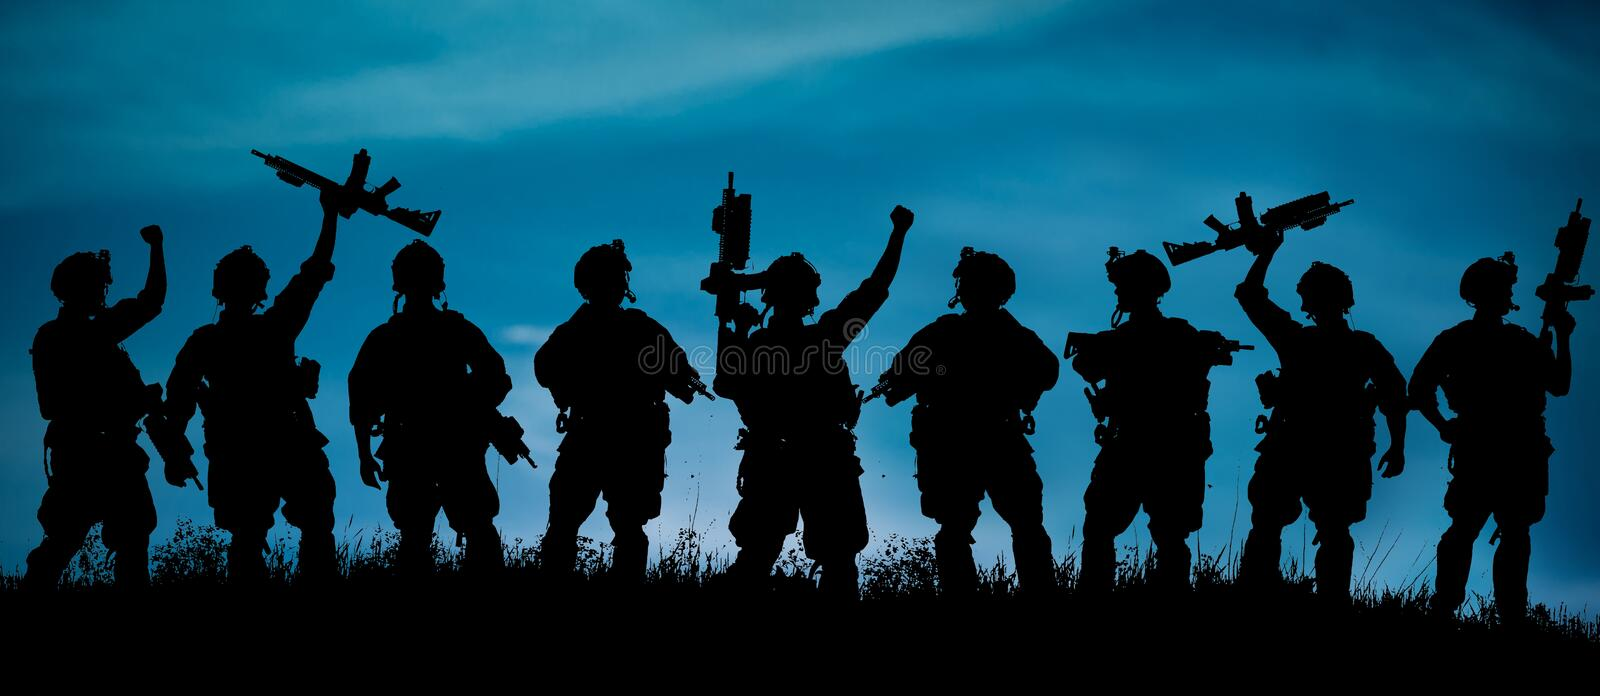 Silhouette of military soldiers team or officer with weapons at royalty free illustration